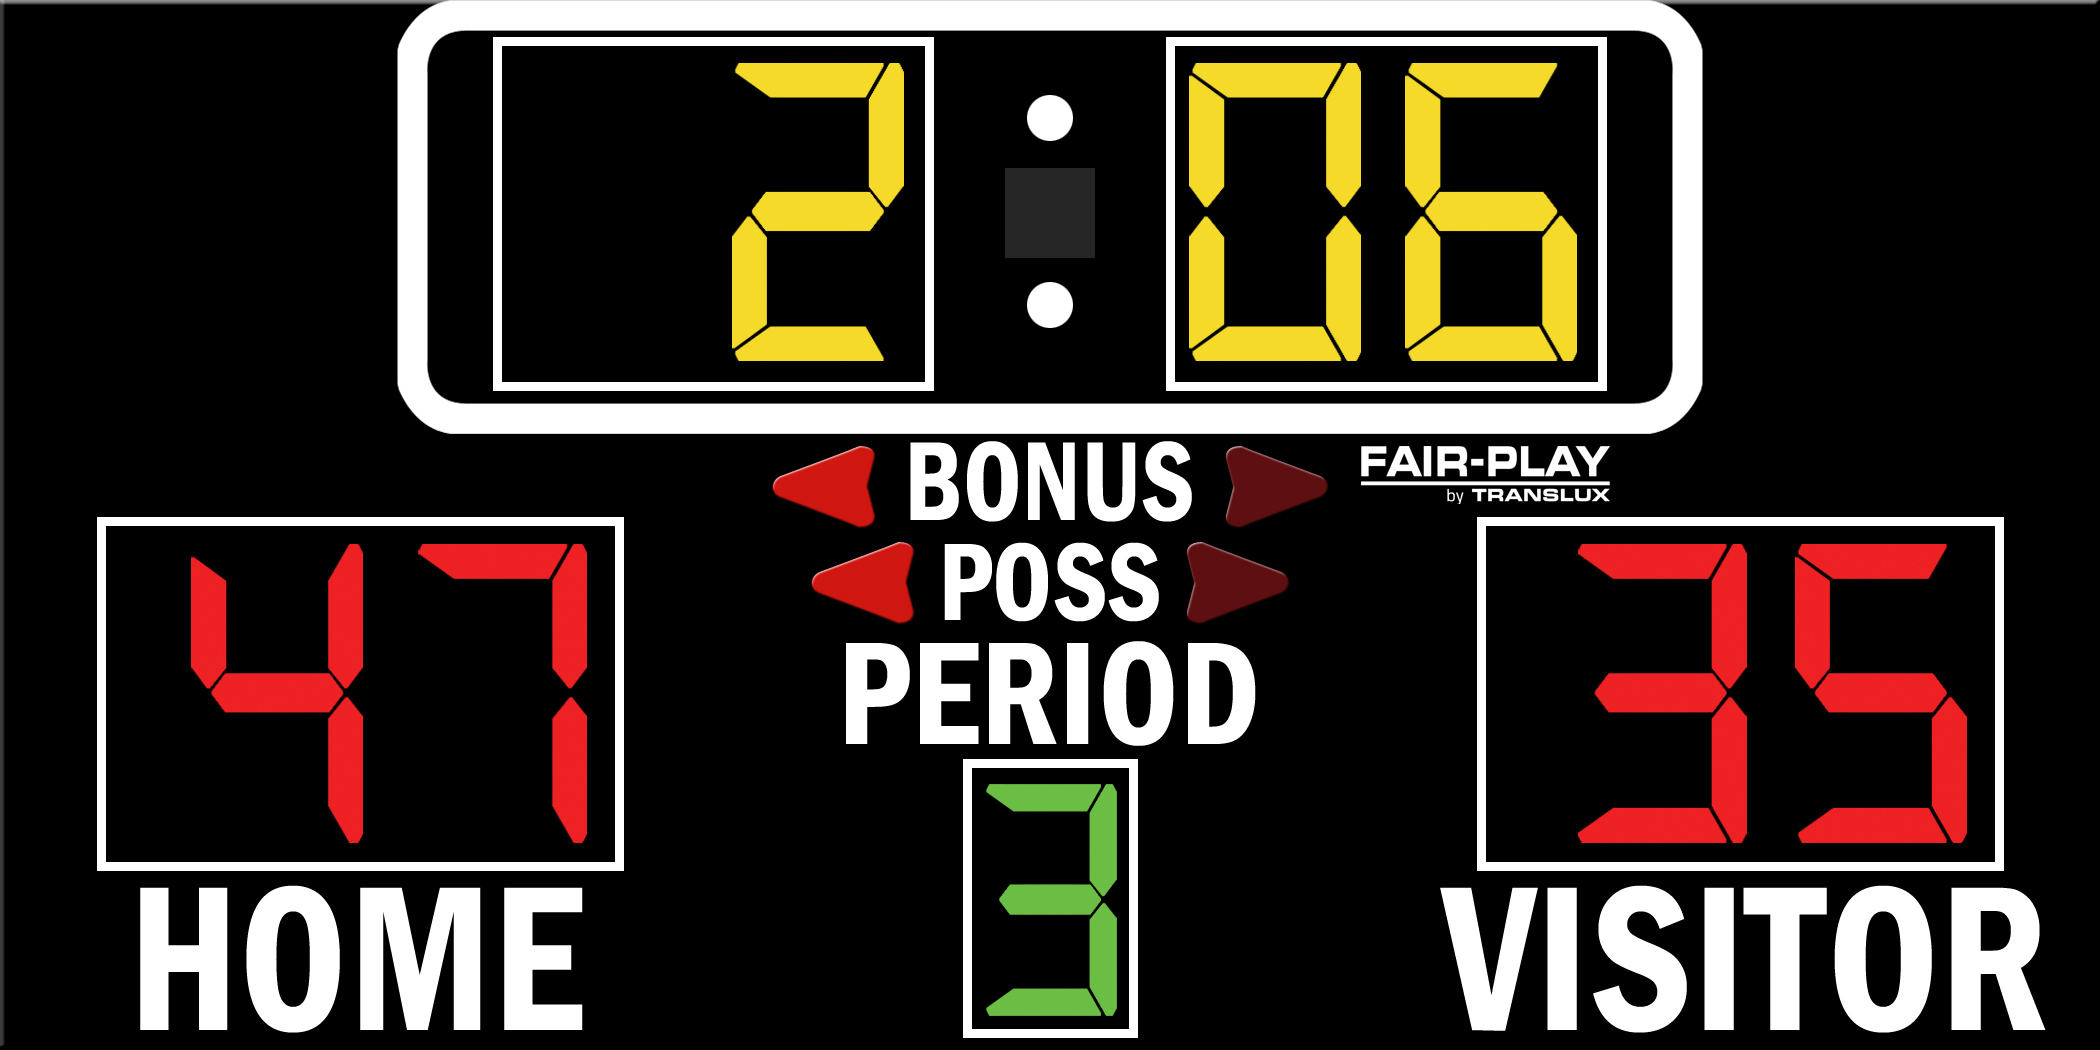 Fair-Play BB-1500-4 Basketball Scoreboard